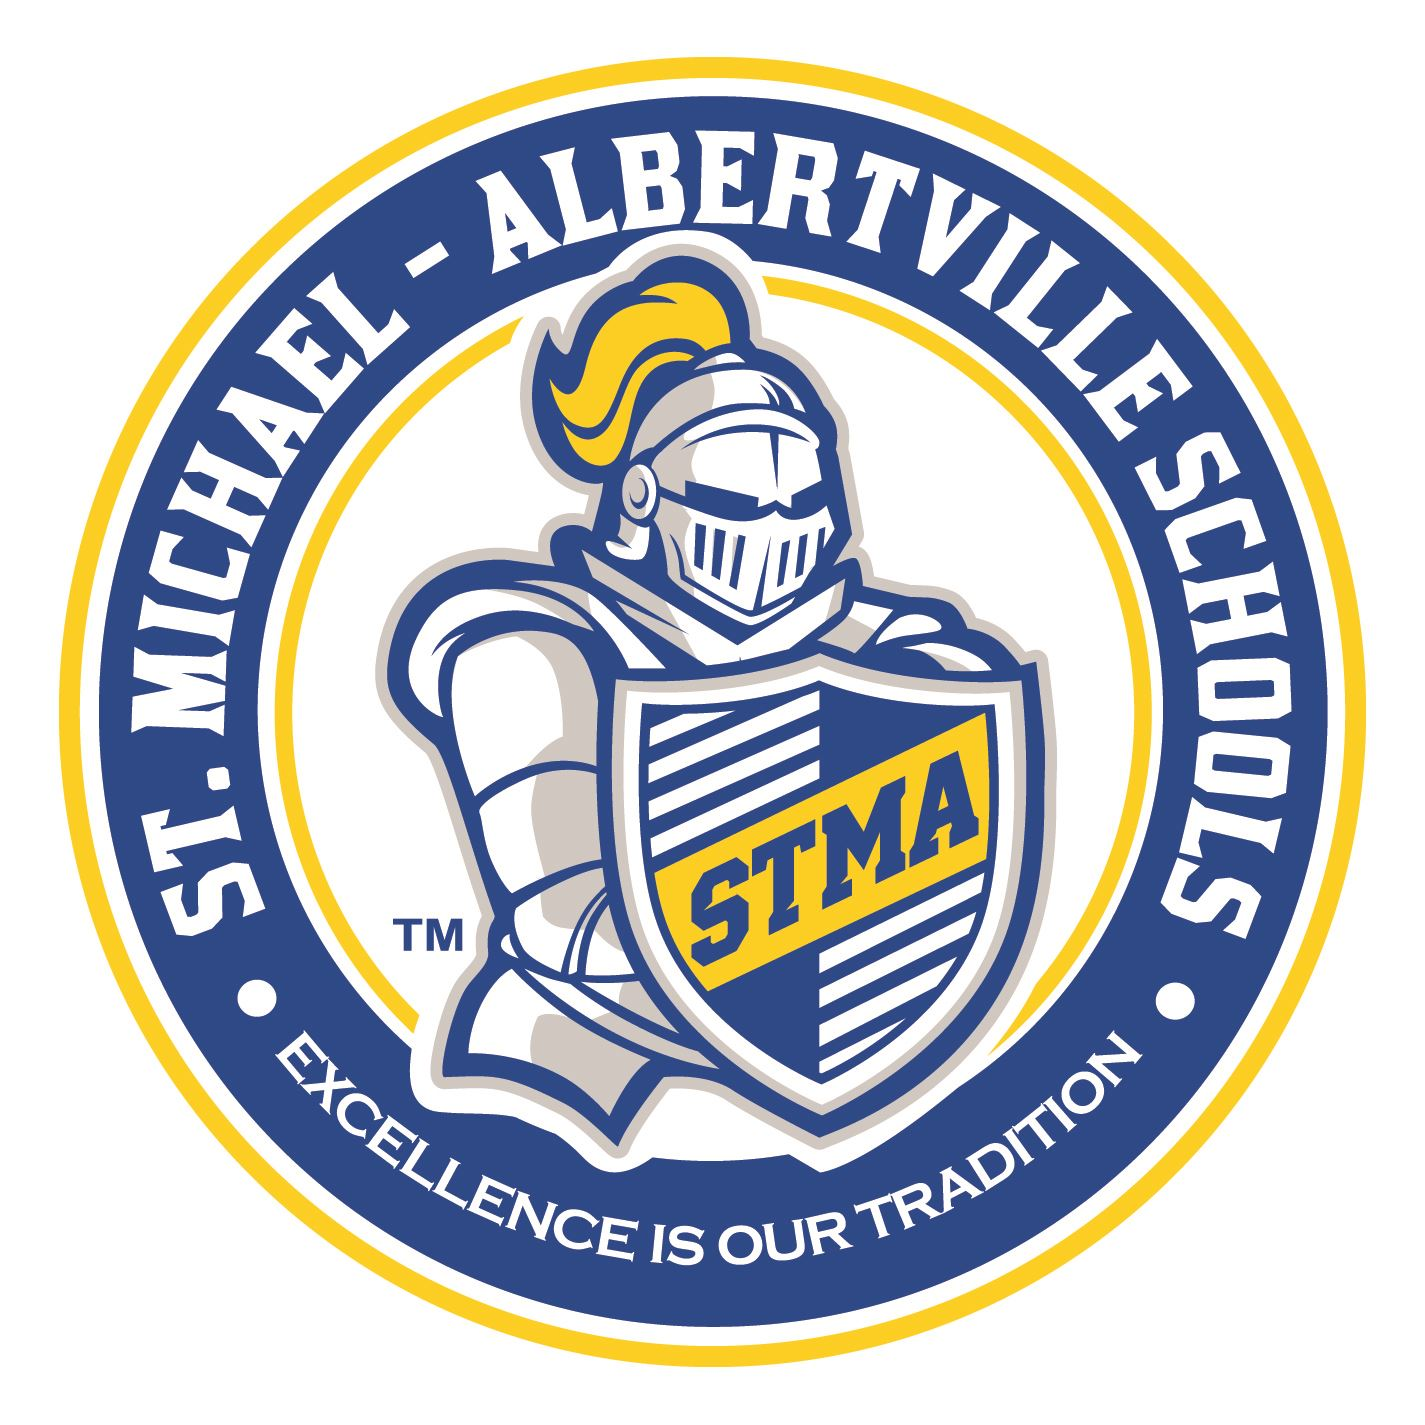 STMA Knight inside a circle that reads St. Michael-Albertville SChools Excellence Is Our Tradition